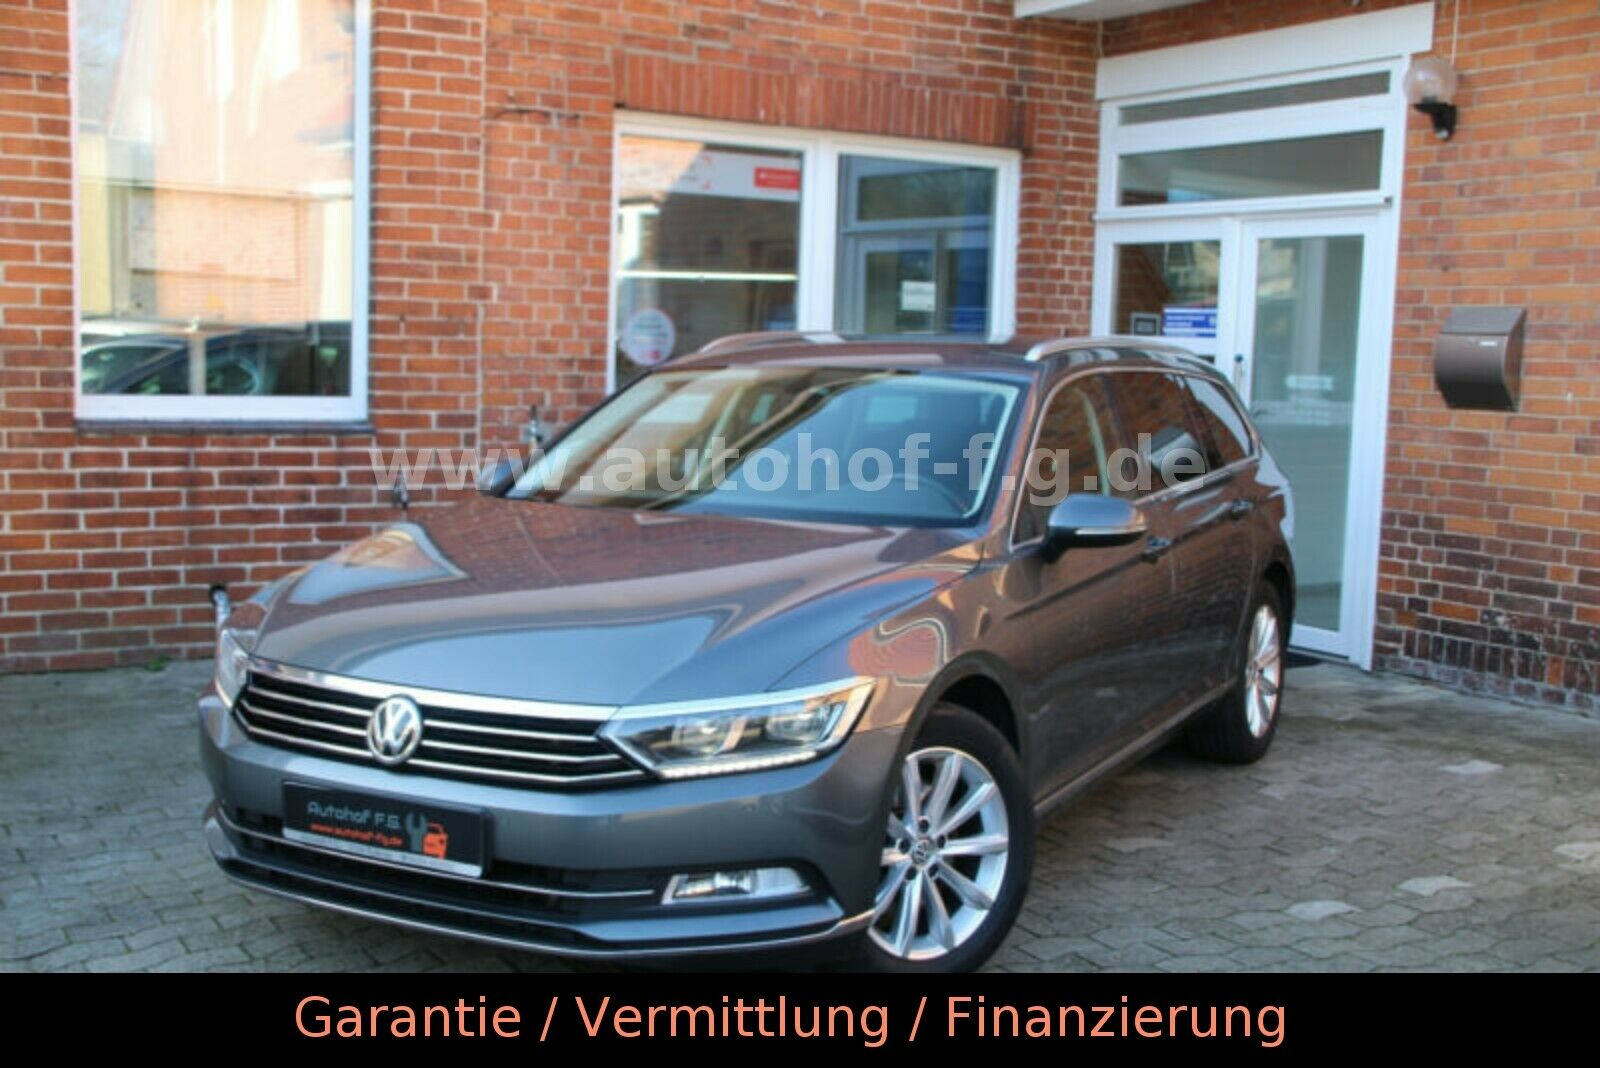 VW Passat Variant Highline BMT/Start-Stopp*NAVI*1HD